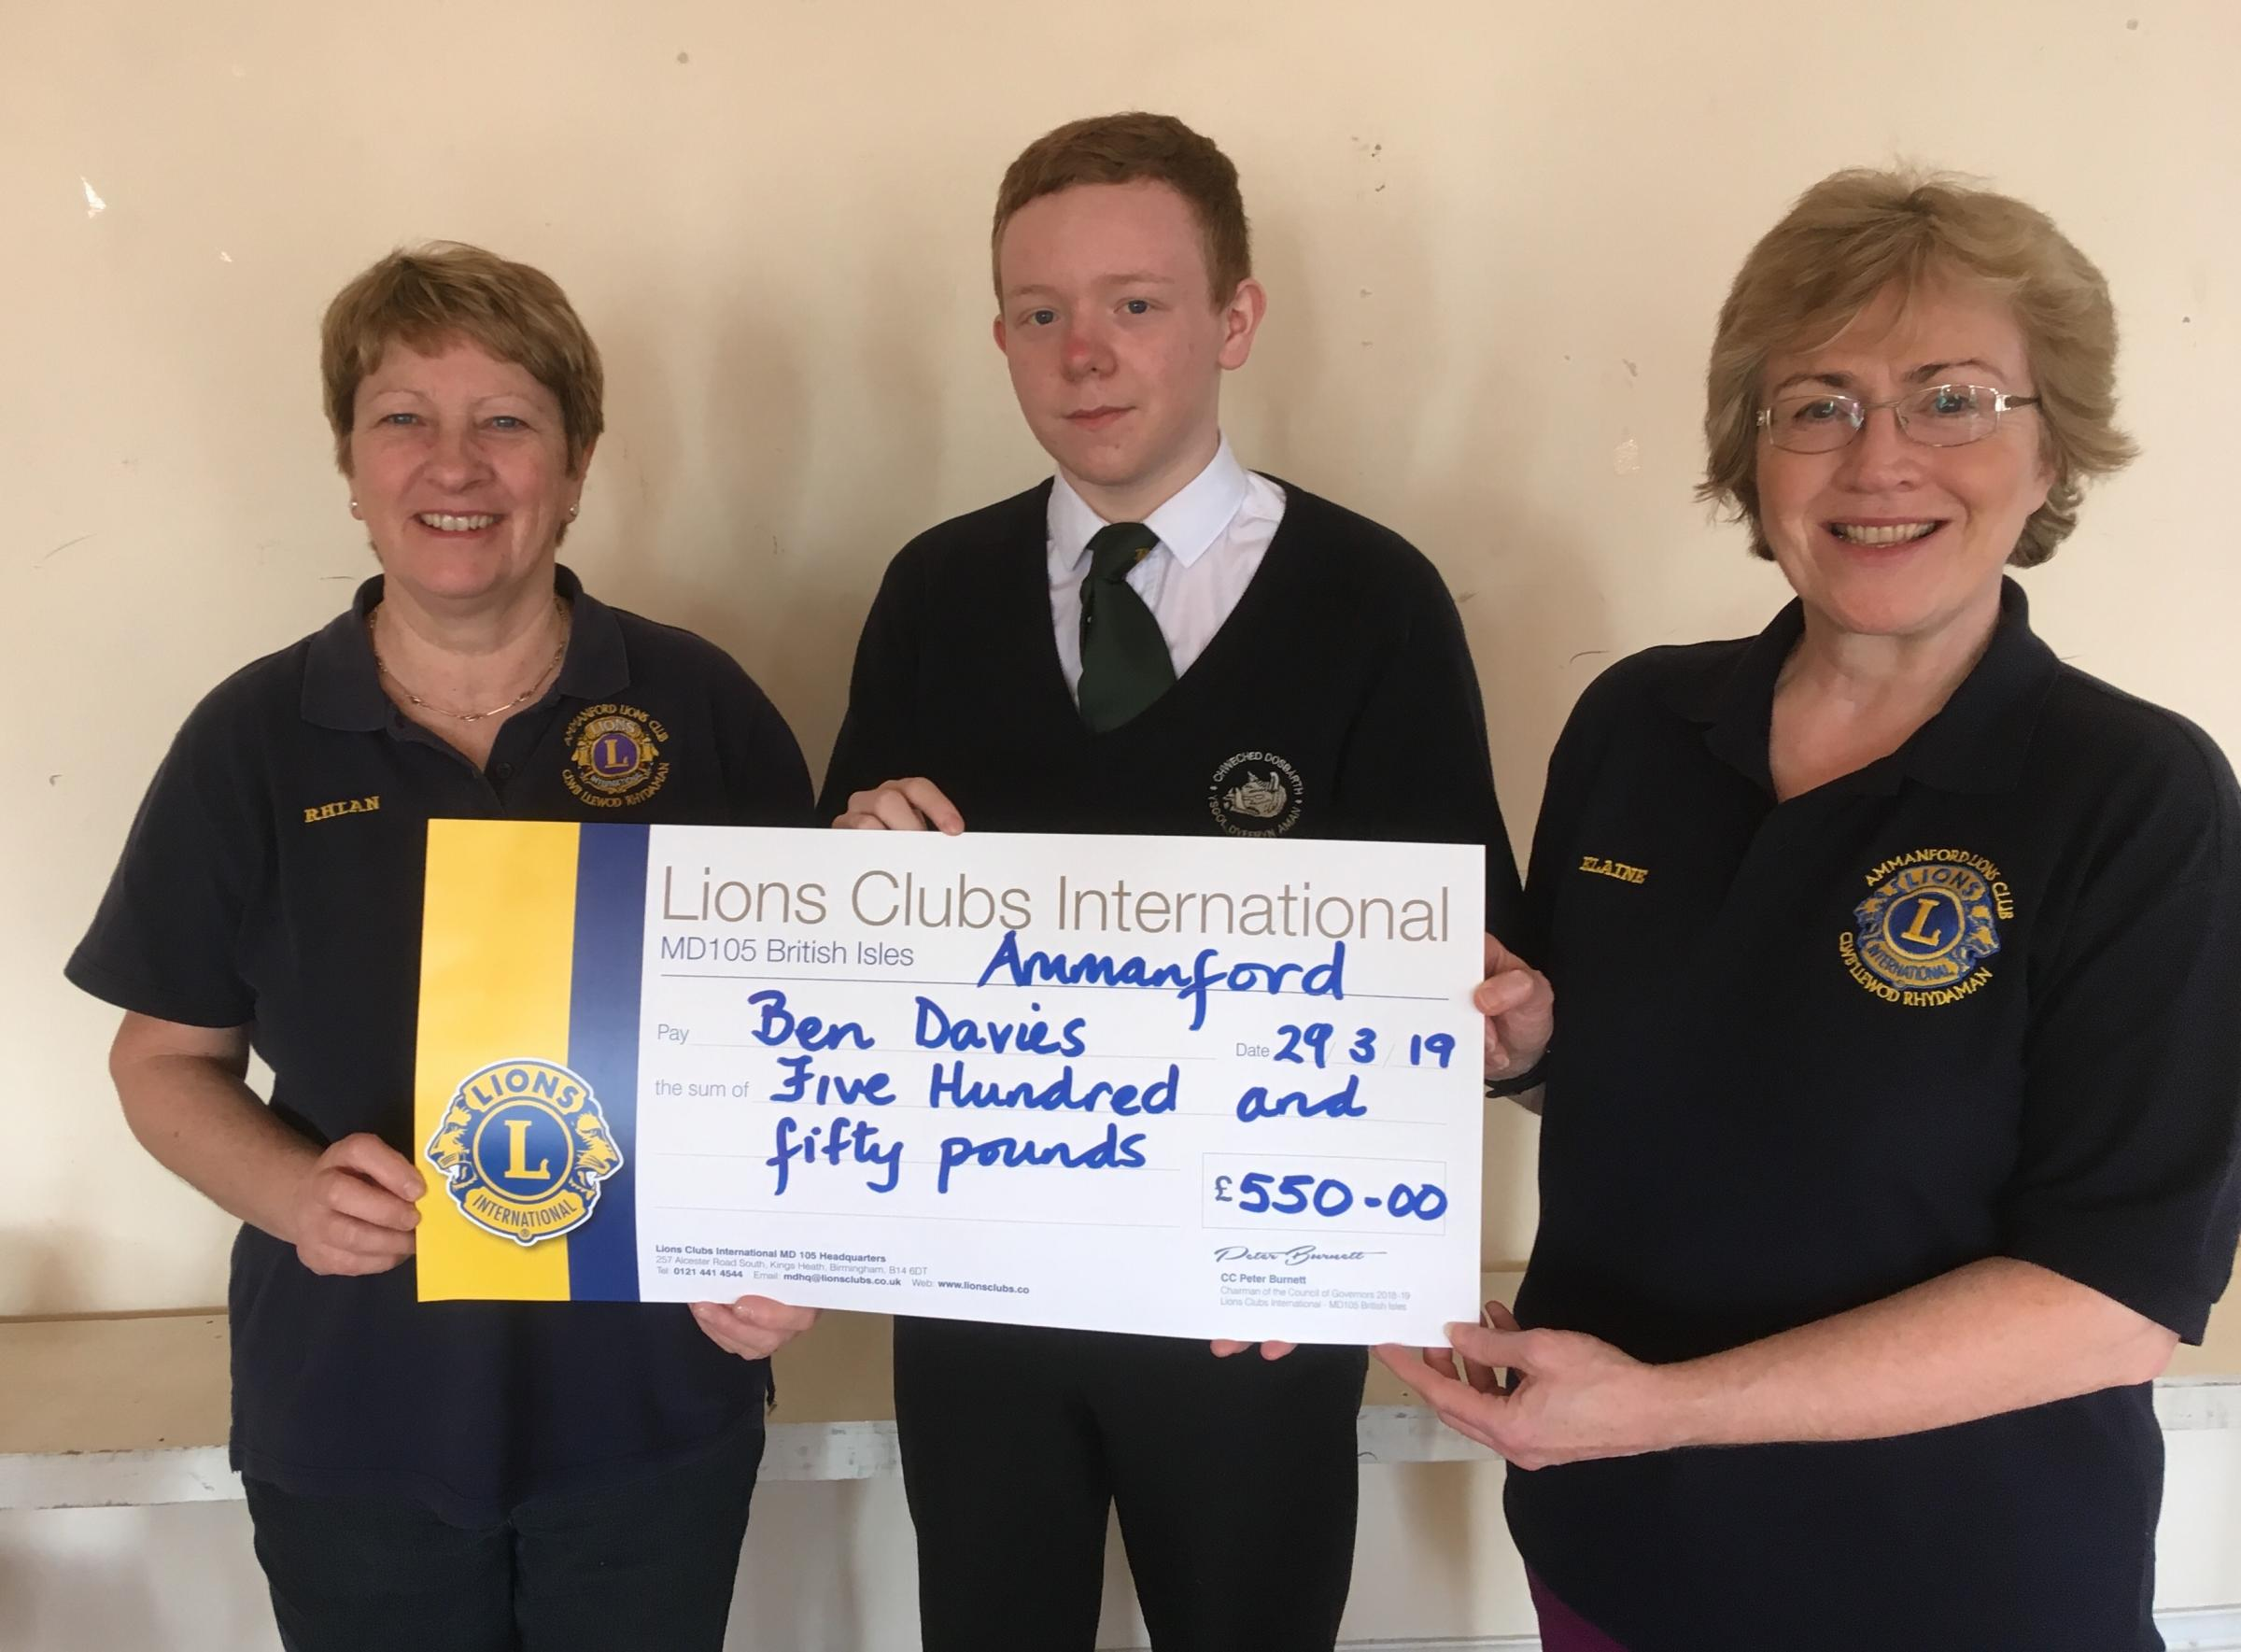 Lions Elaine and Rhian present Ben Davies with a cheque of £550